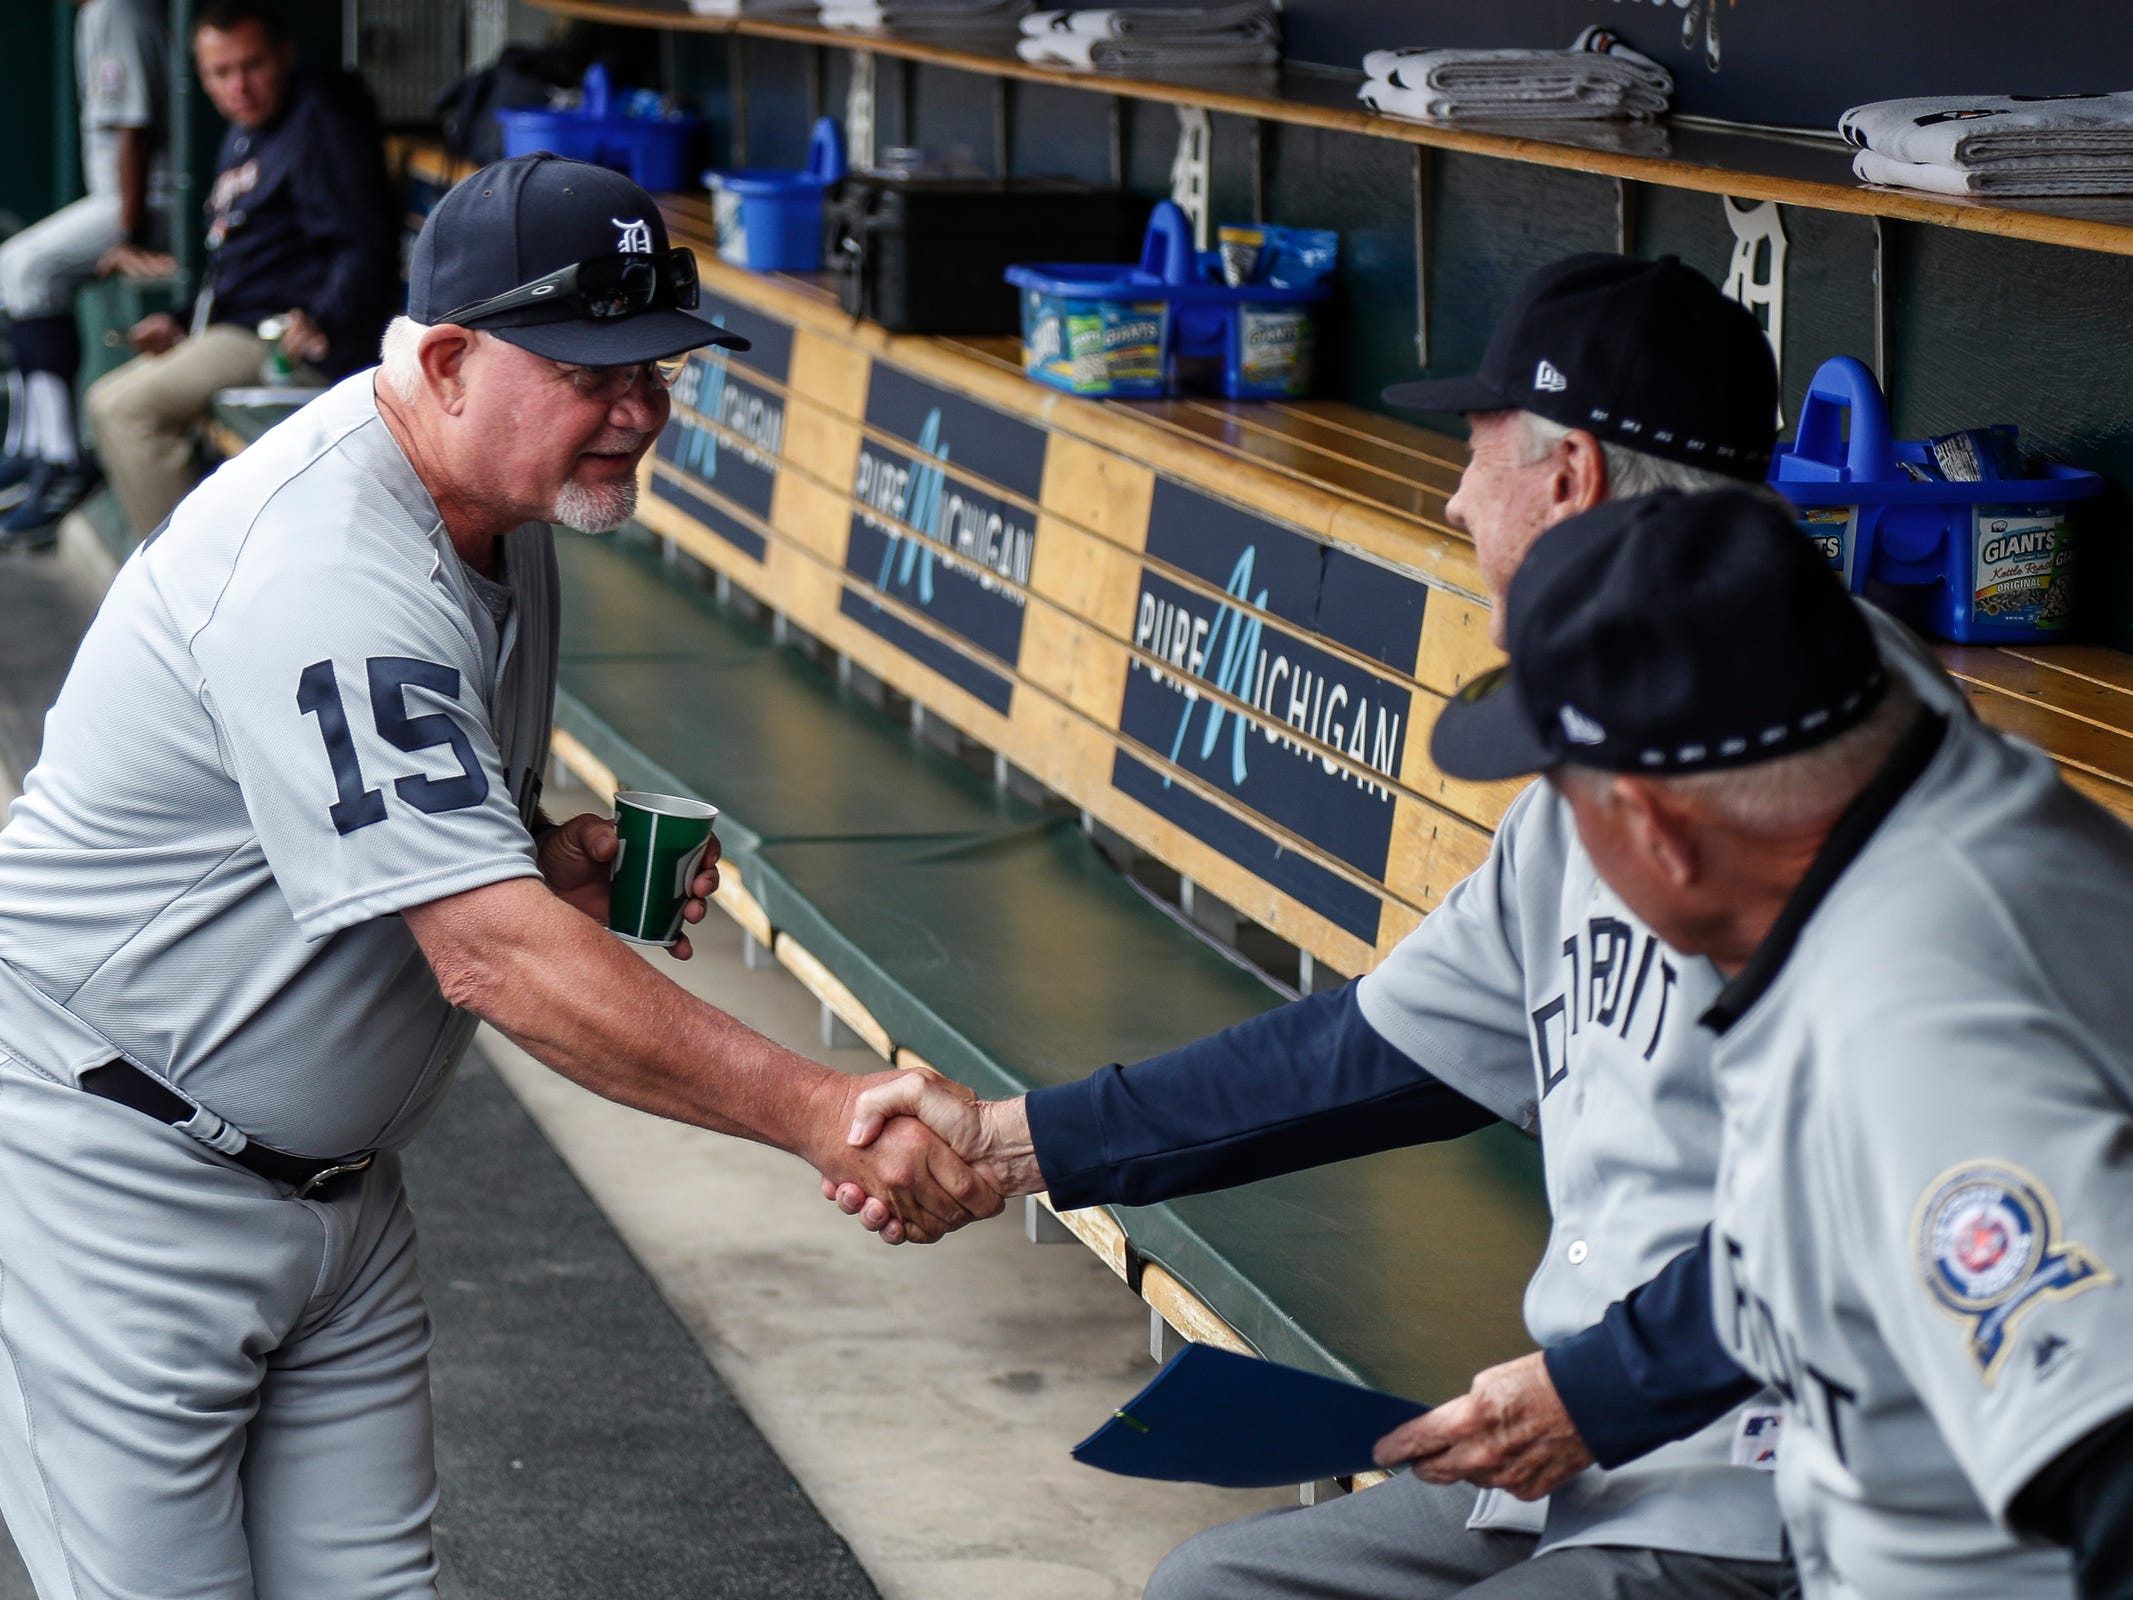 Detroit Tigers manager Ron Gardenhire shakes hands with 1968 Tigers players Al Kaline and Mickey Stanley during the celebration of the 50th anniversary of 1968 World Series championship at Comerica Park in Detroit, Saturday, Sept. 8, 2018.